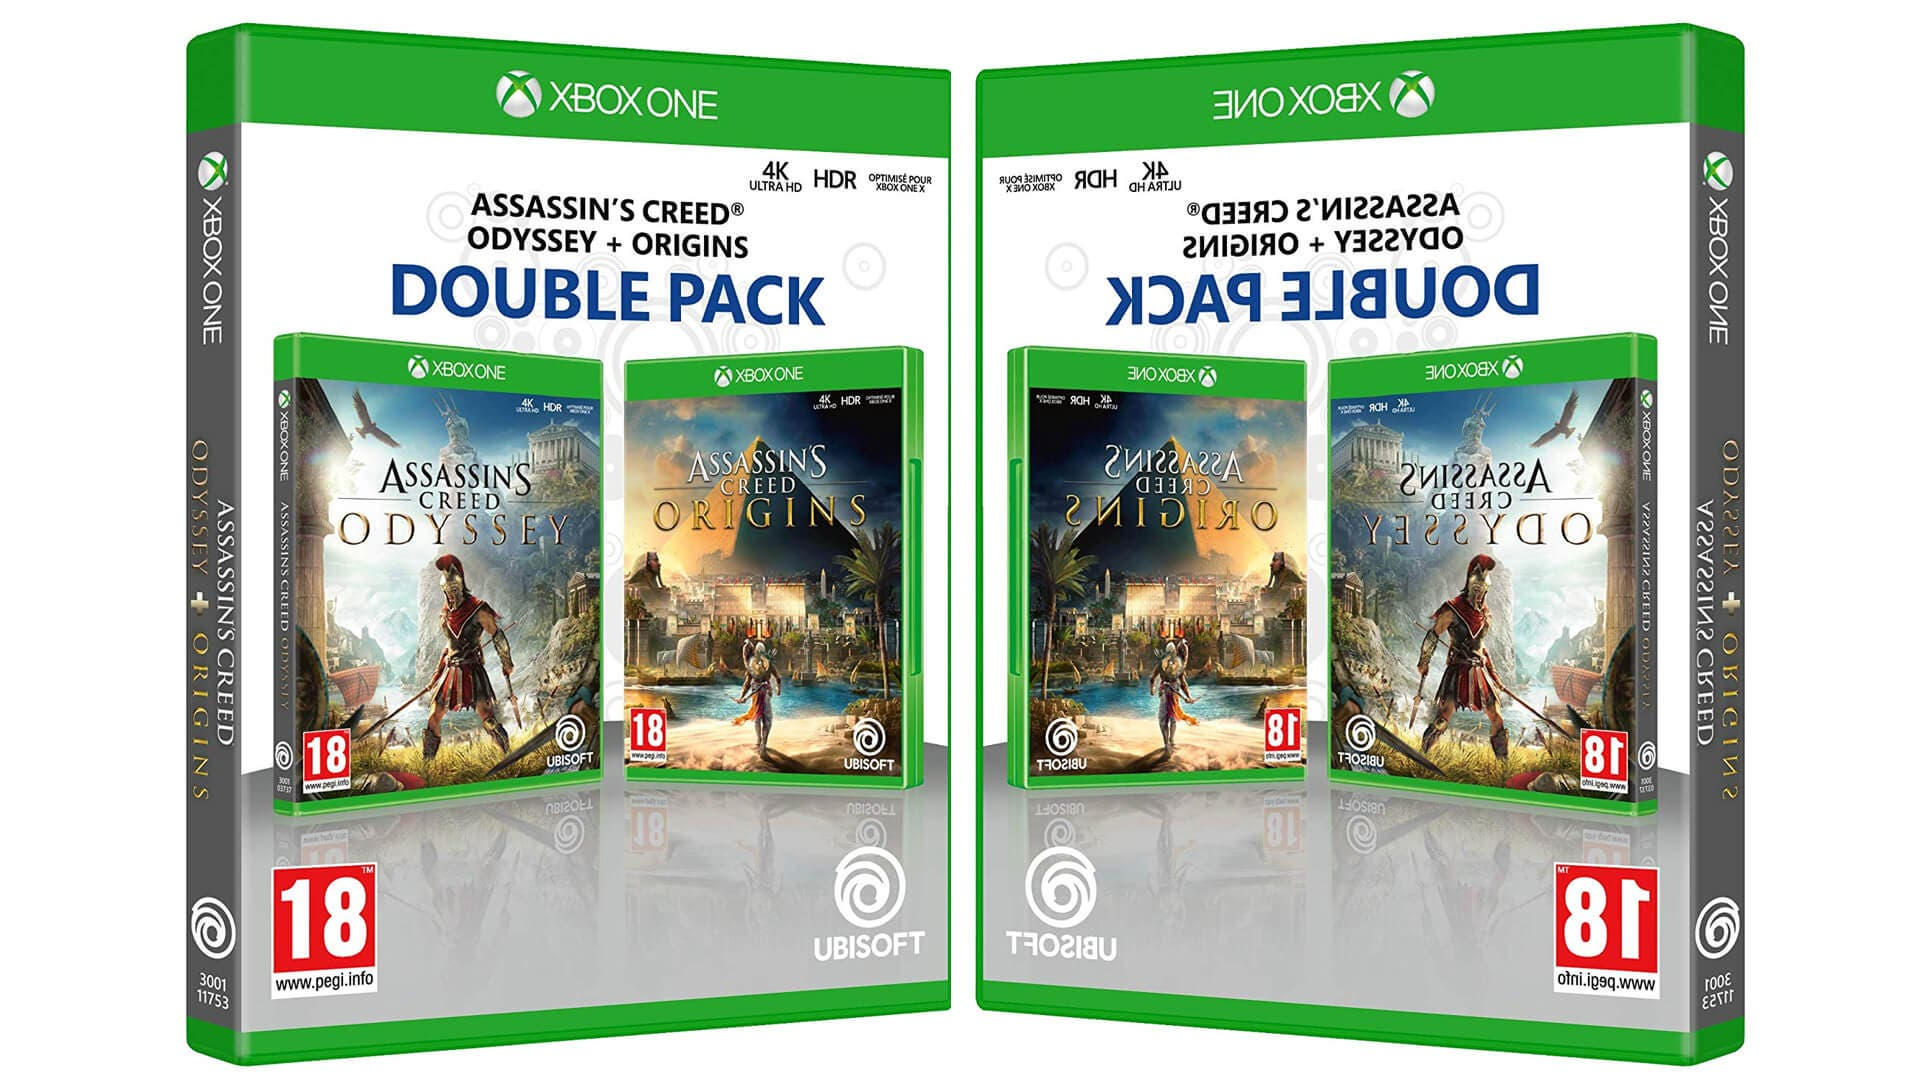 Gran oferta de Doble Pack Assassin's Creed Origins + Odyssey para Xbox 6